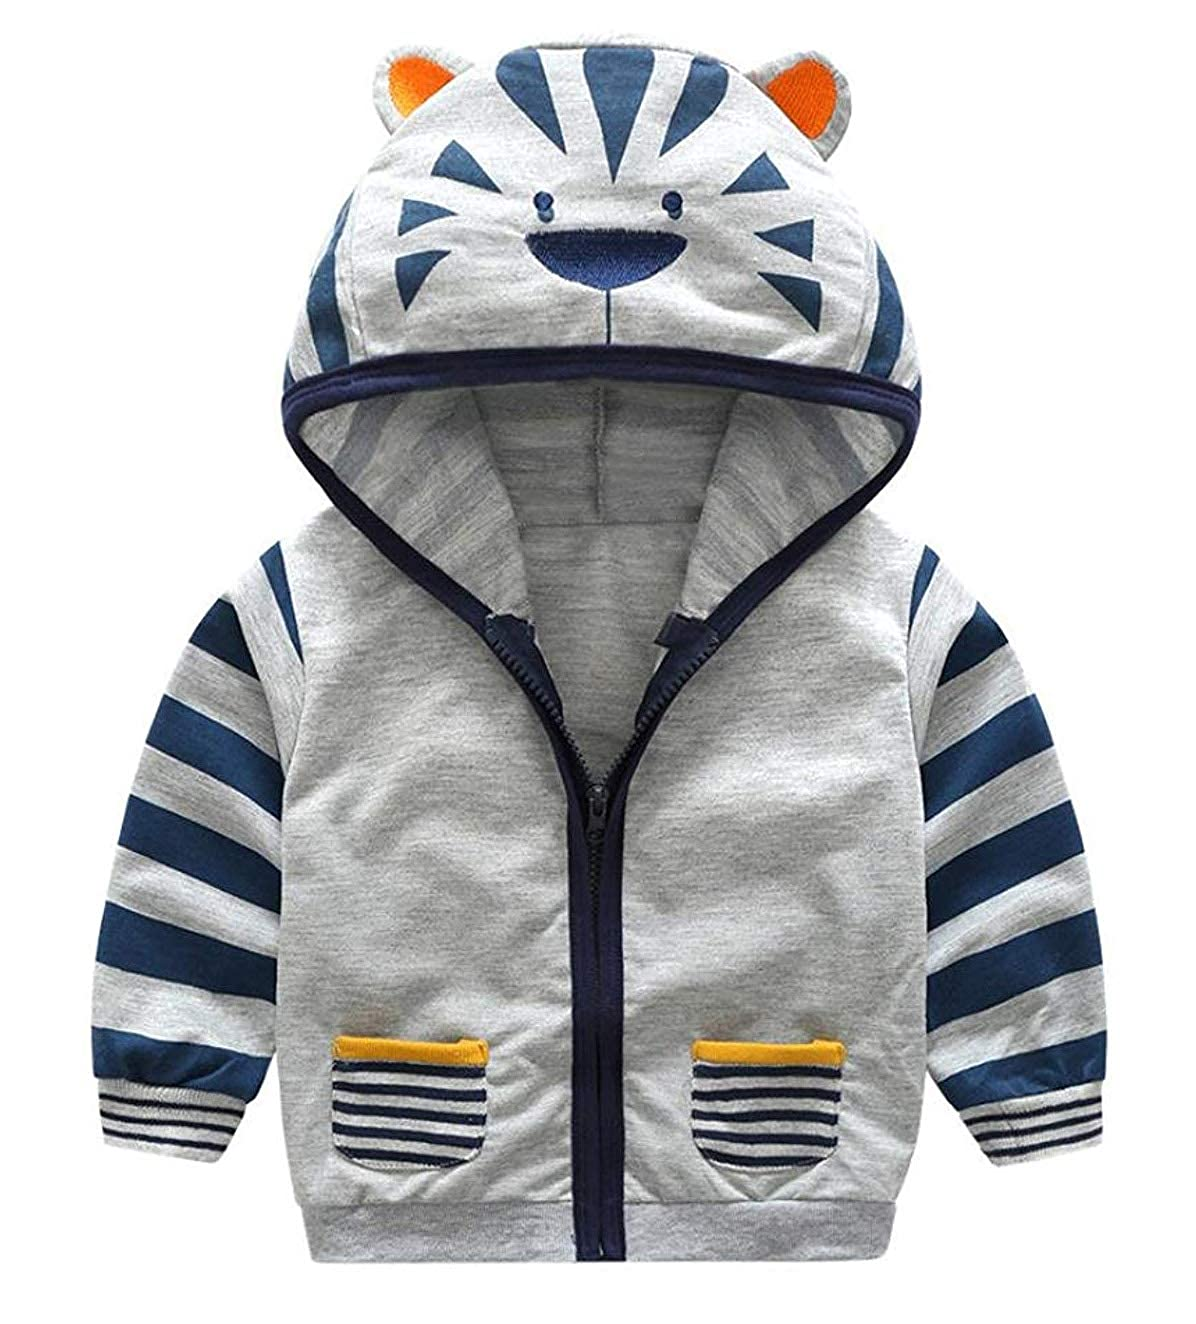 Toddler Baby Boys Cute Cartoon Animal Hooded Zipper Jacket Coat Tops Clothes